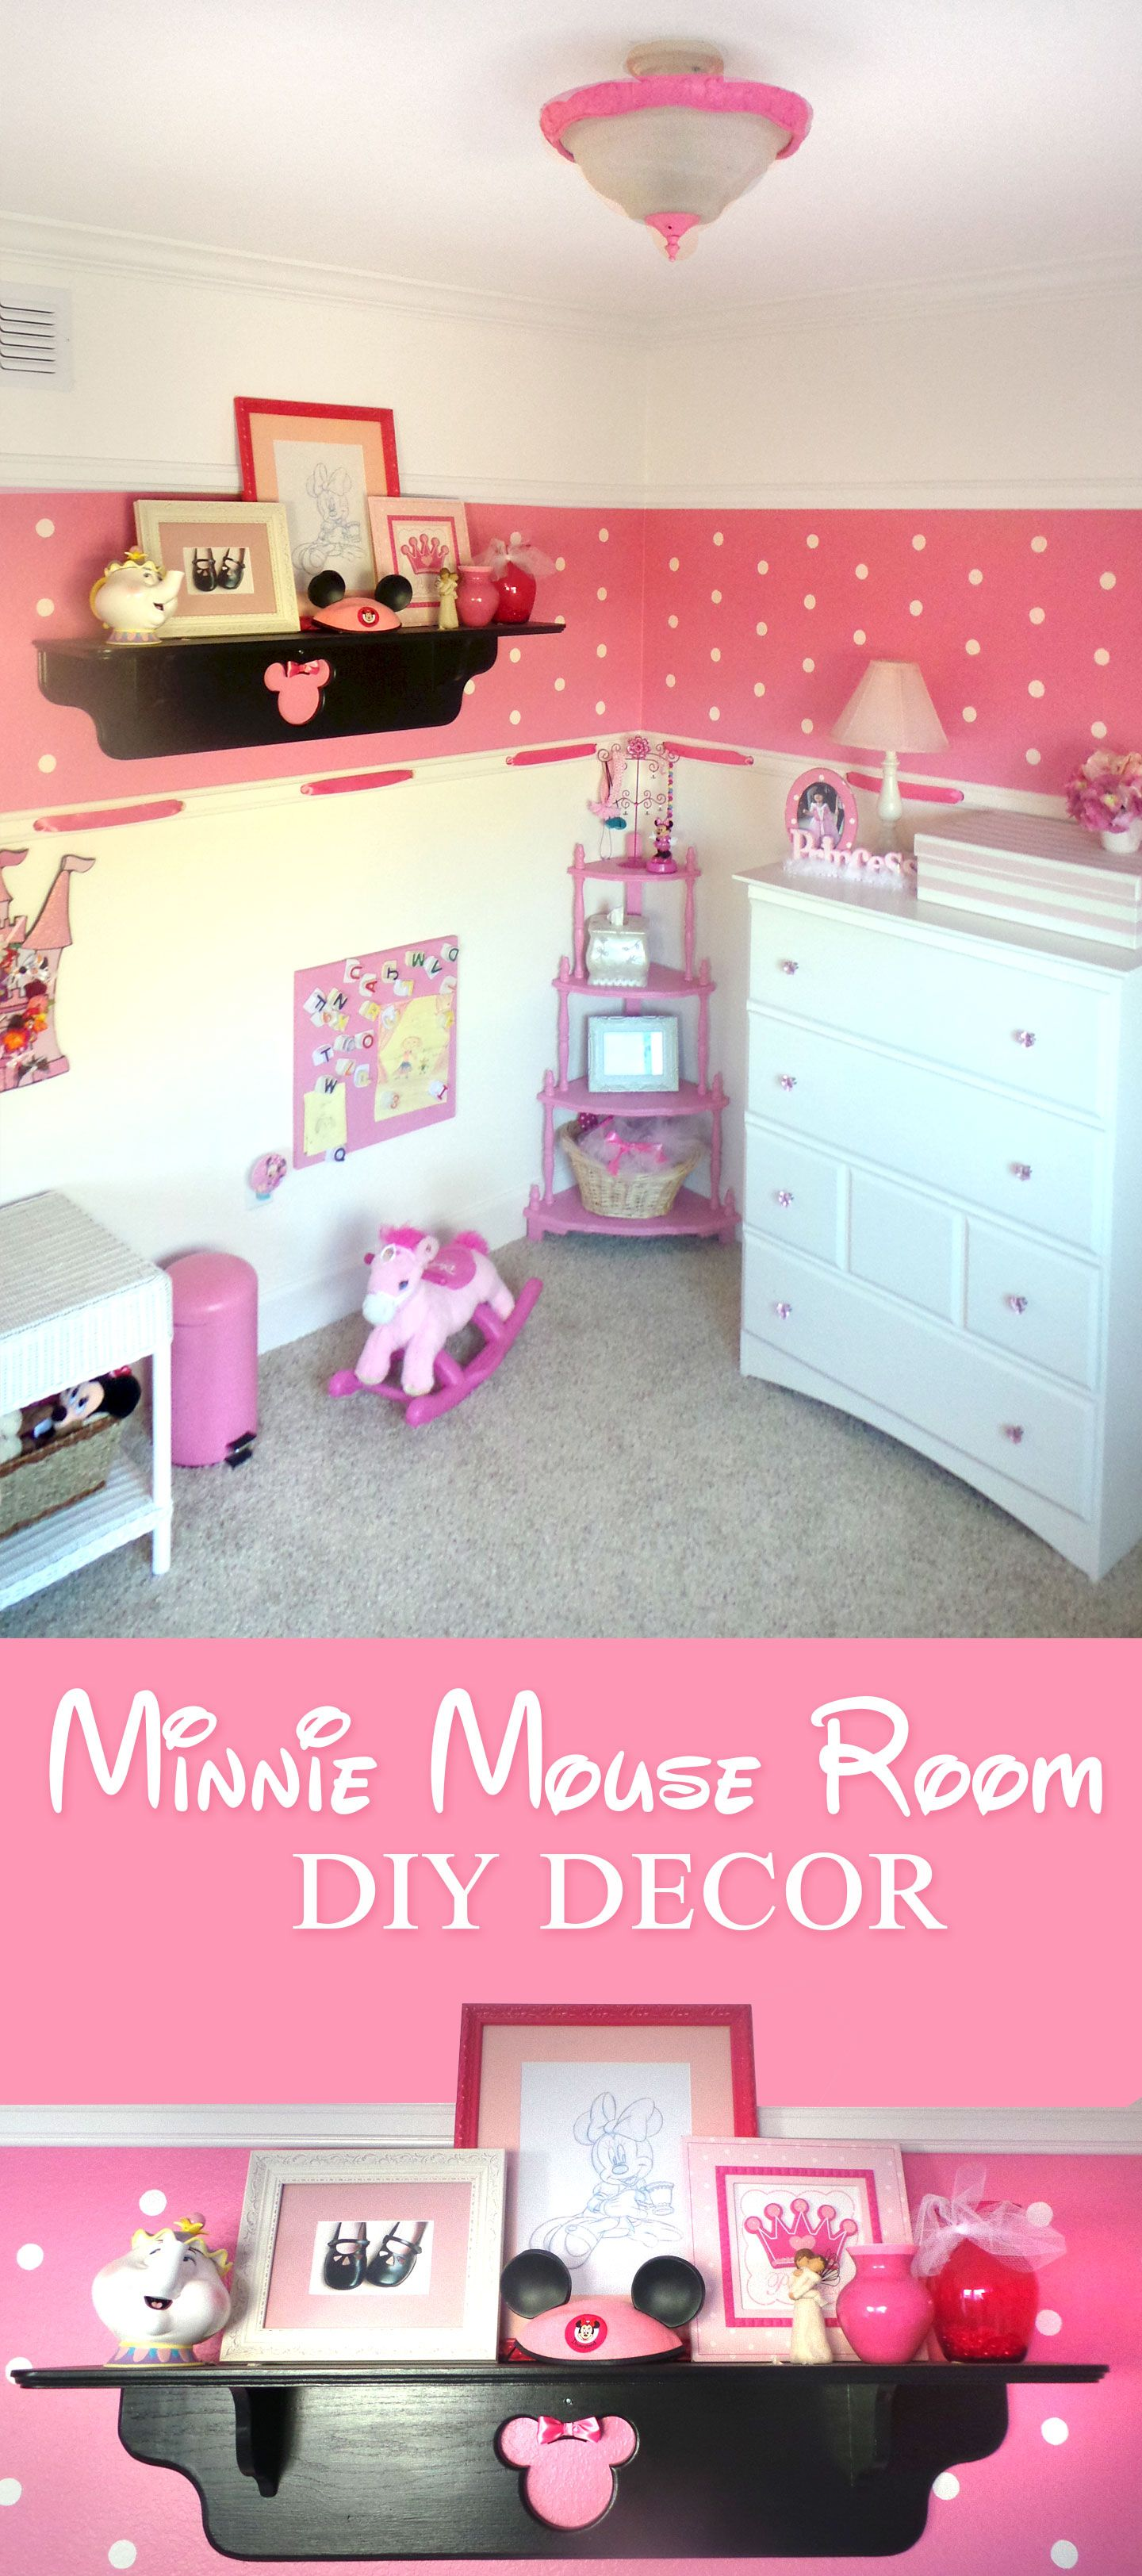 Minnie Mouse Room Diy Decor Step By Pain Instructions Colors And Ways To Stretch A Budget Make An Adorable Polka Dot Toddler